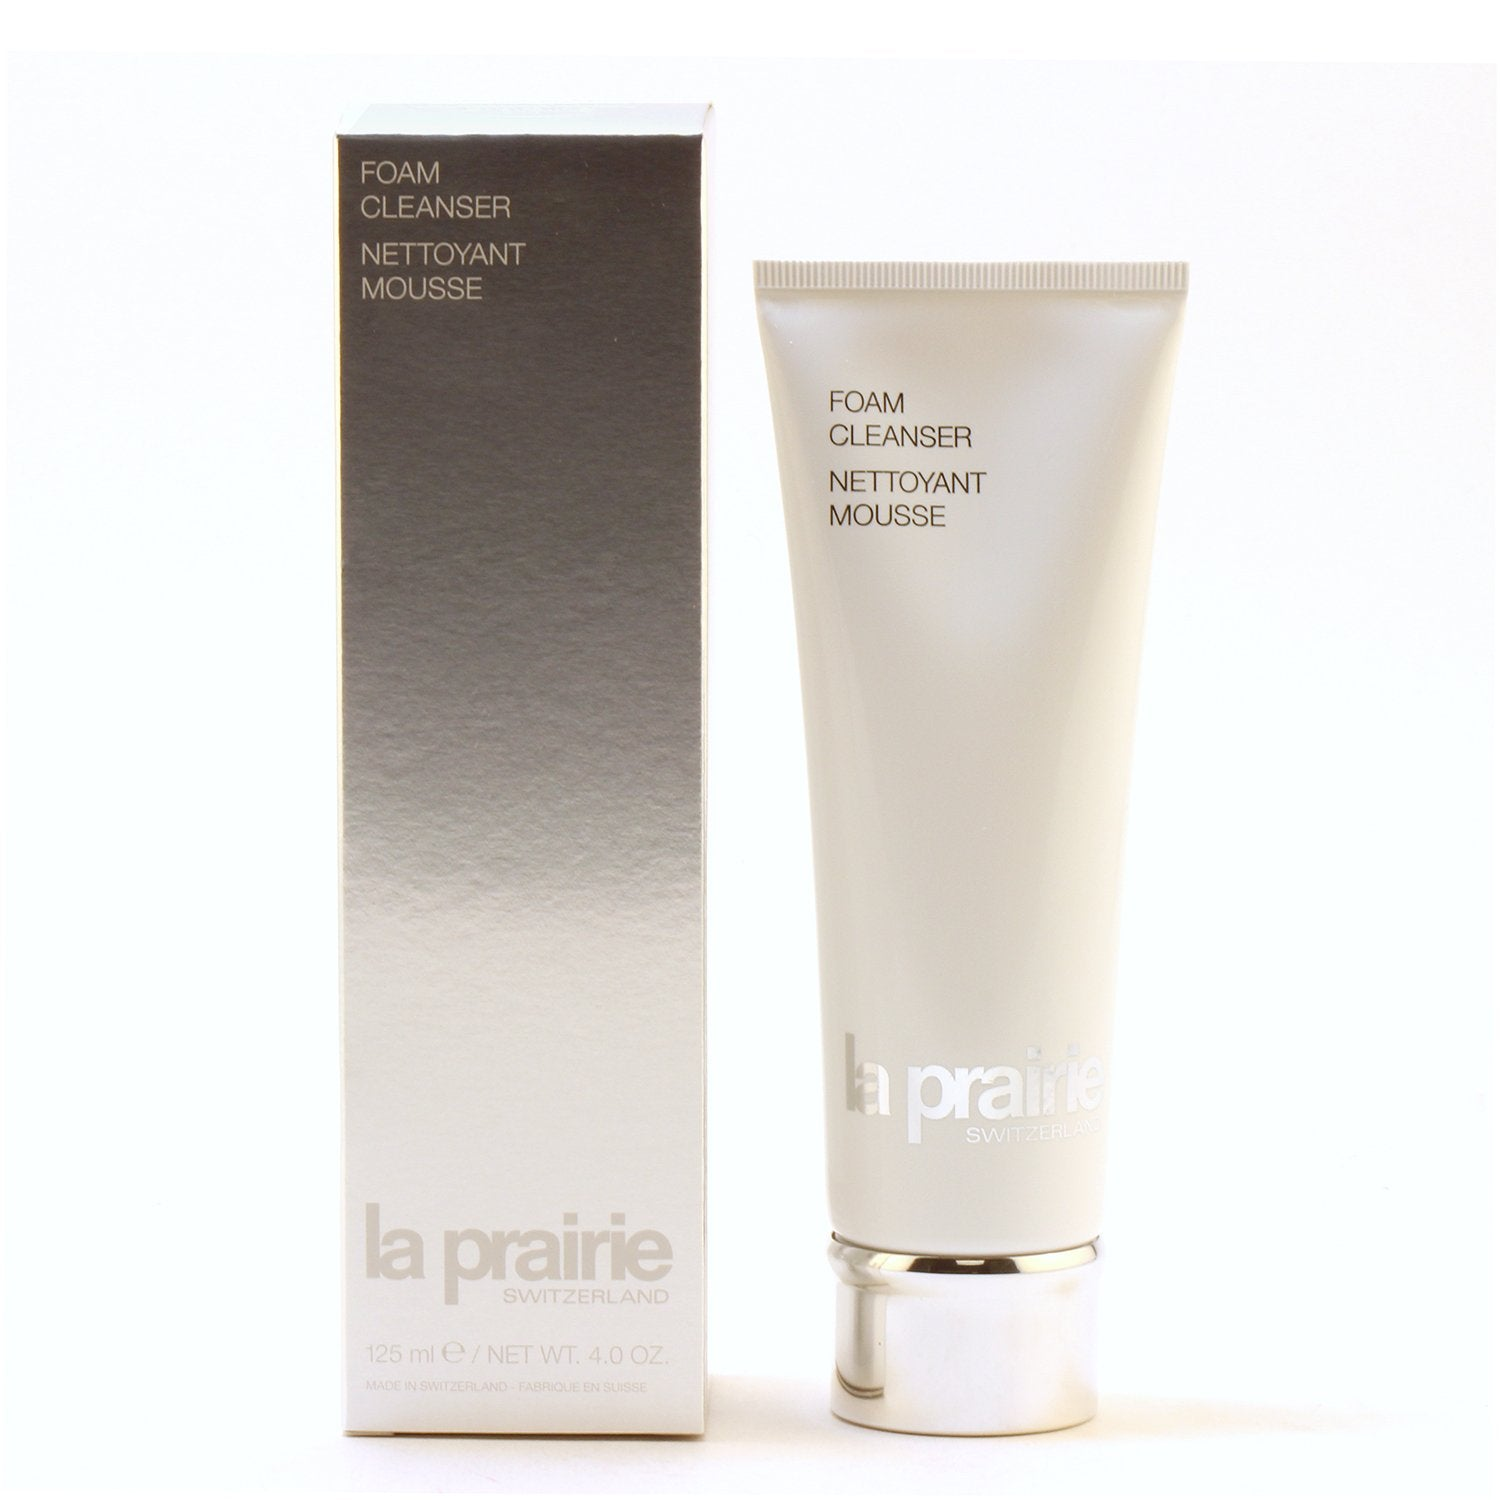 Skin Care - LA PRAIRIE FOAM CLEANSER, 4.2 OZ